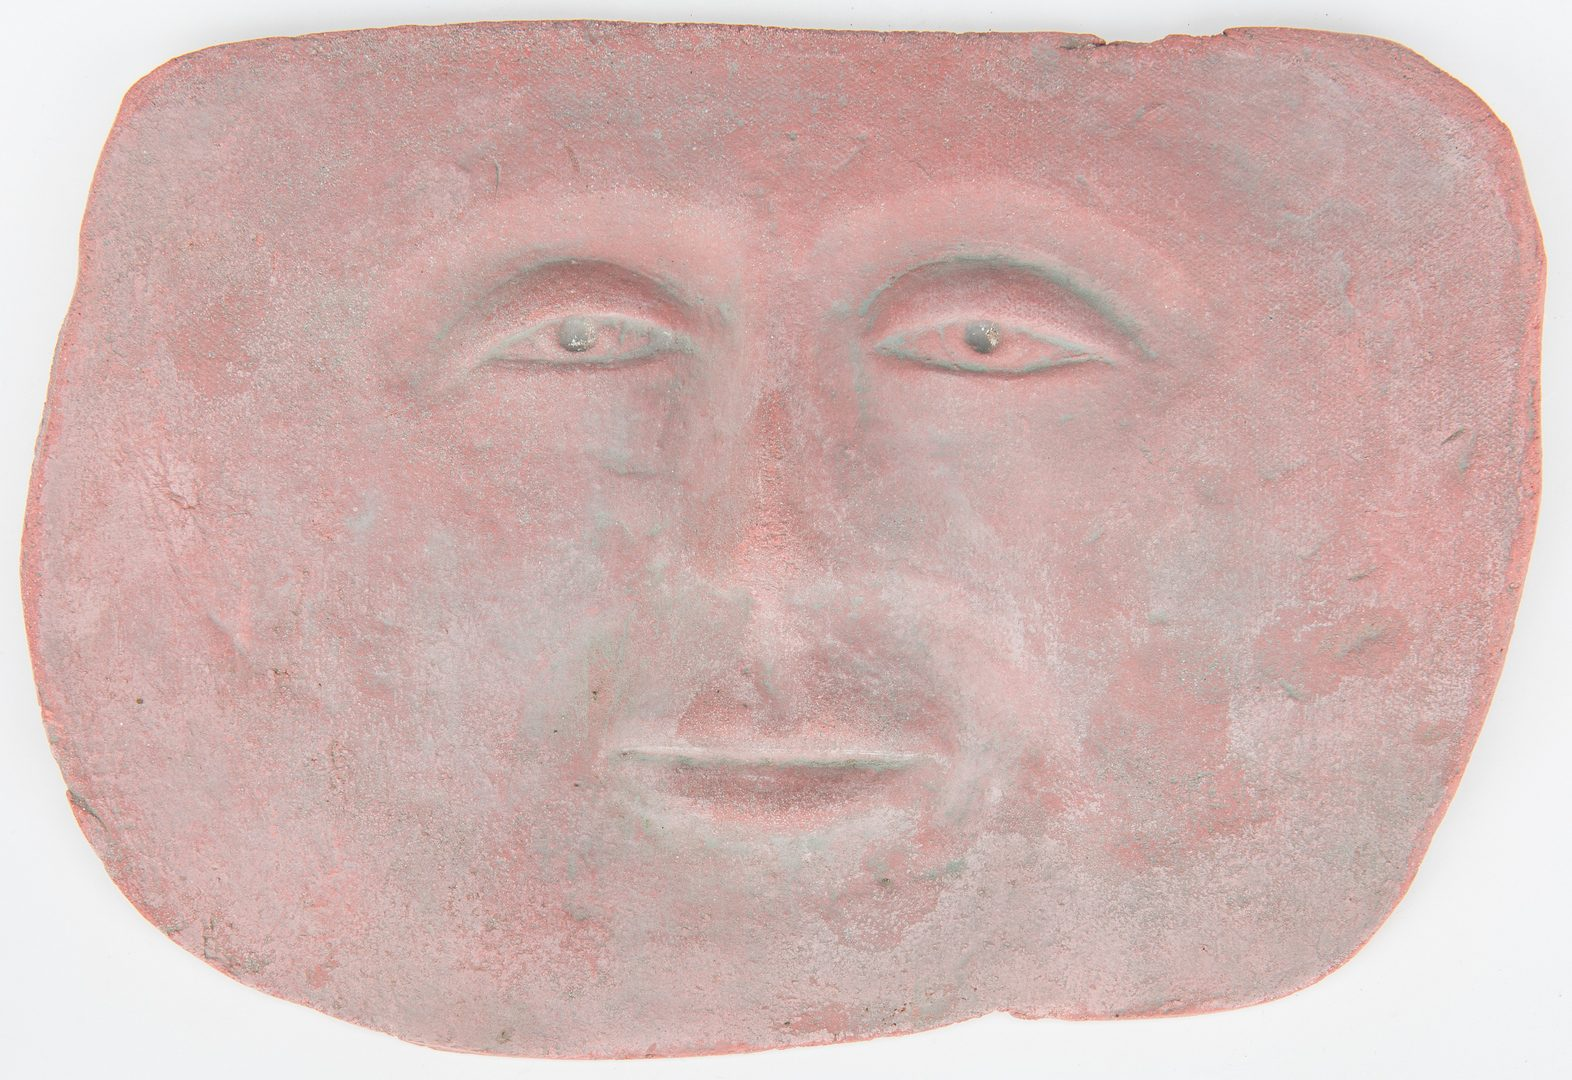 Lot 86: 5 Ceramic Faces by Olen Bryant